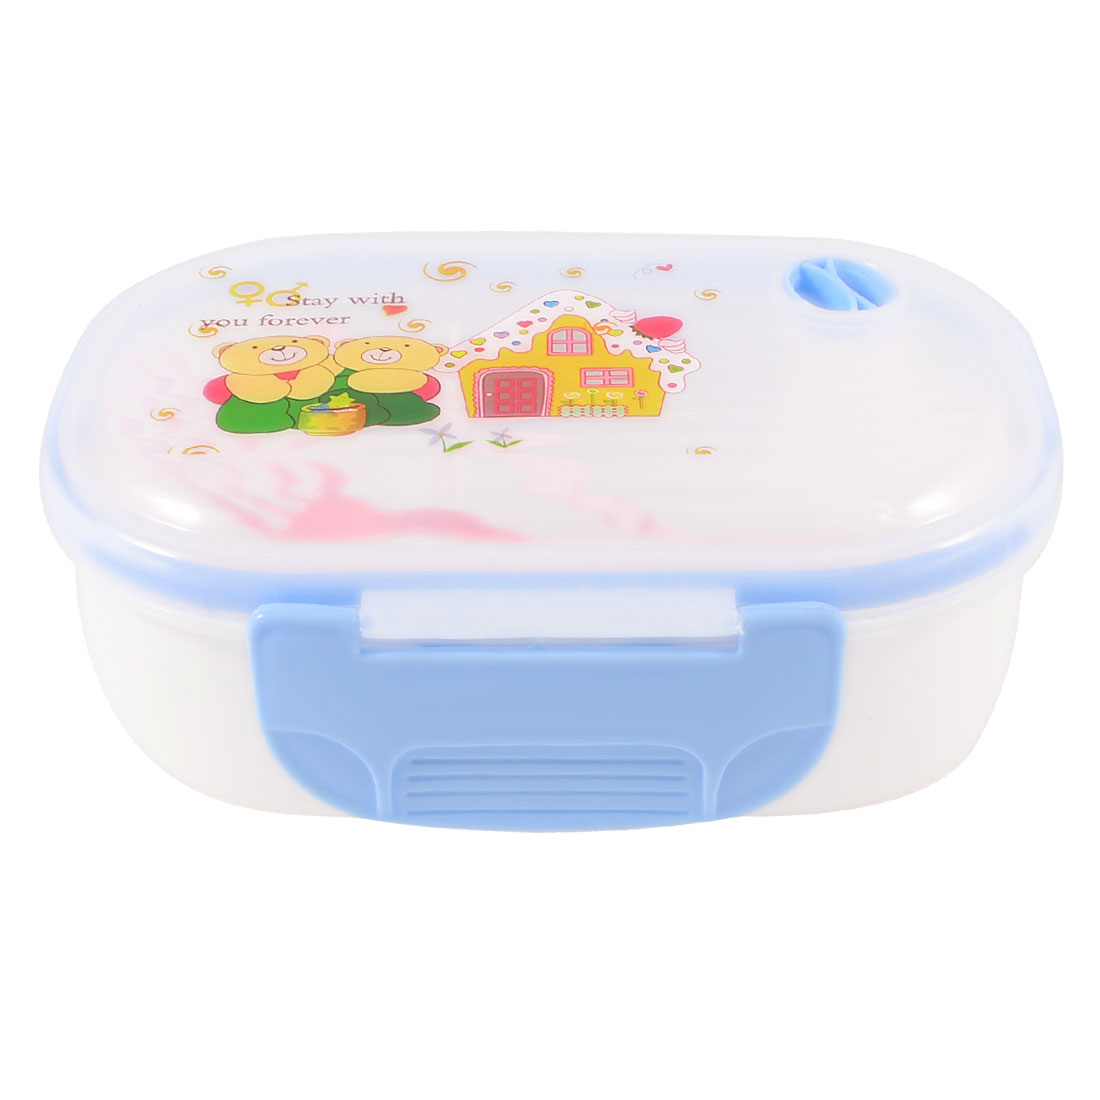 Household Cartoon Print Hole Design 2 Compartments Lunch Box Blue w Spoon Fork